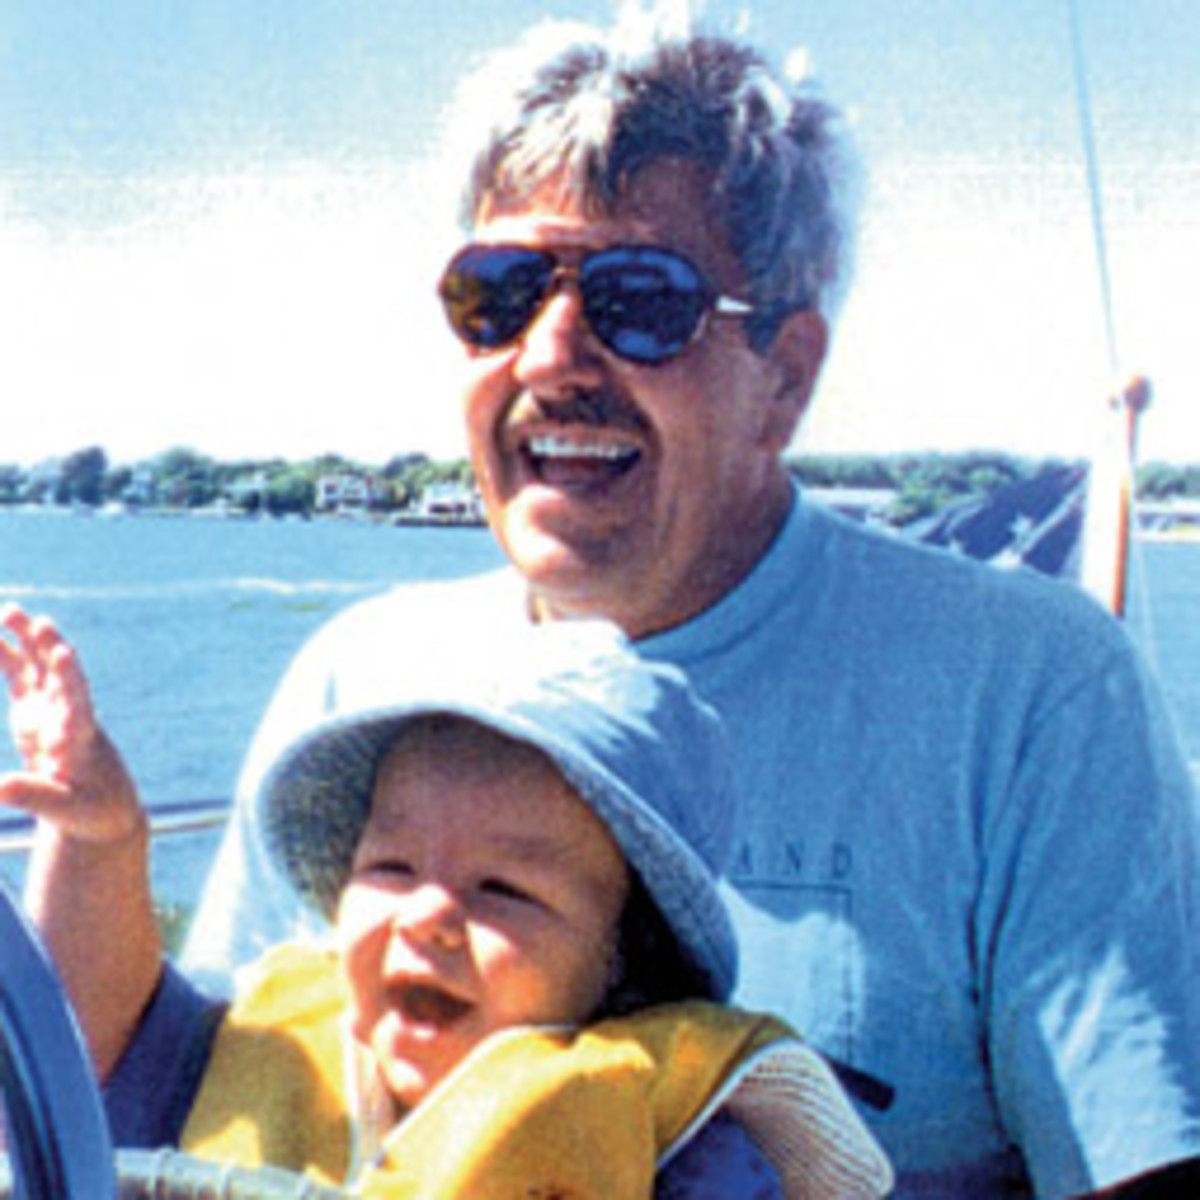 Mike O'Shea with his grandson, Keegan, in 1996.